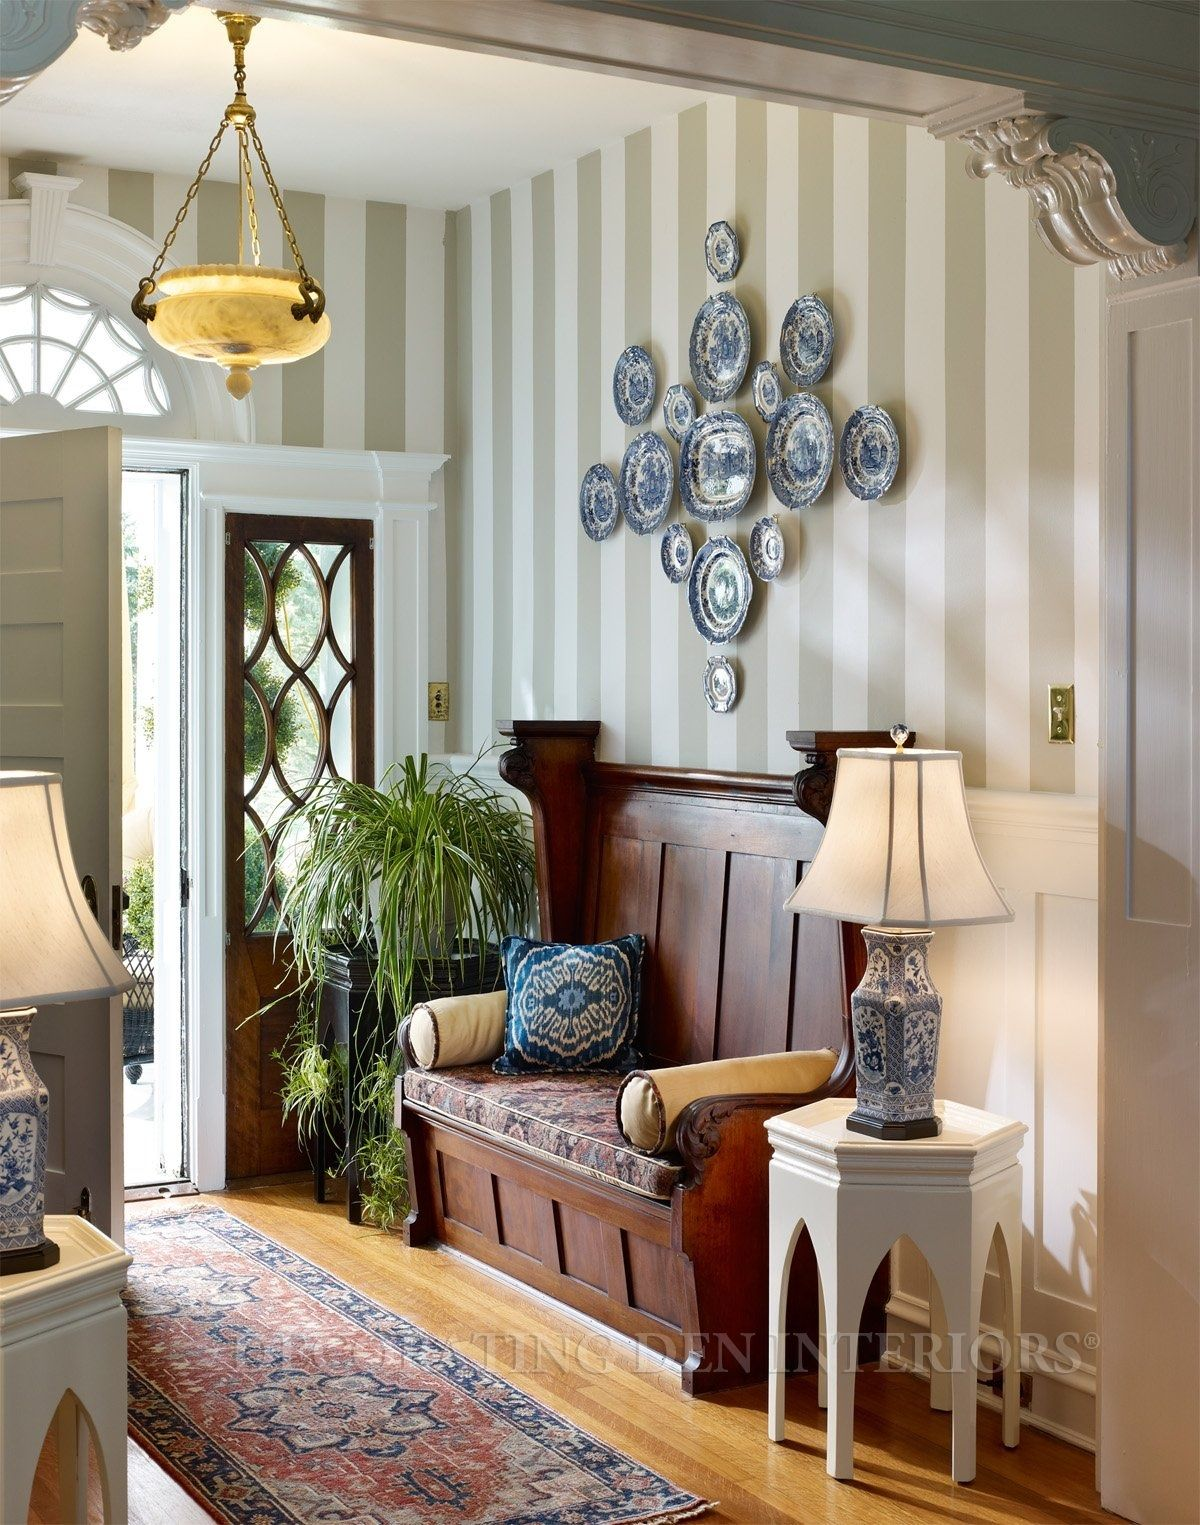 Foyer Great Example Of An Impressive Way To Welcome Guests Traditional Entry By Sarah Hermans With Decorating Den Interiors